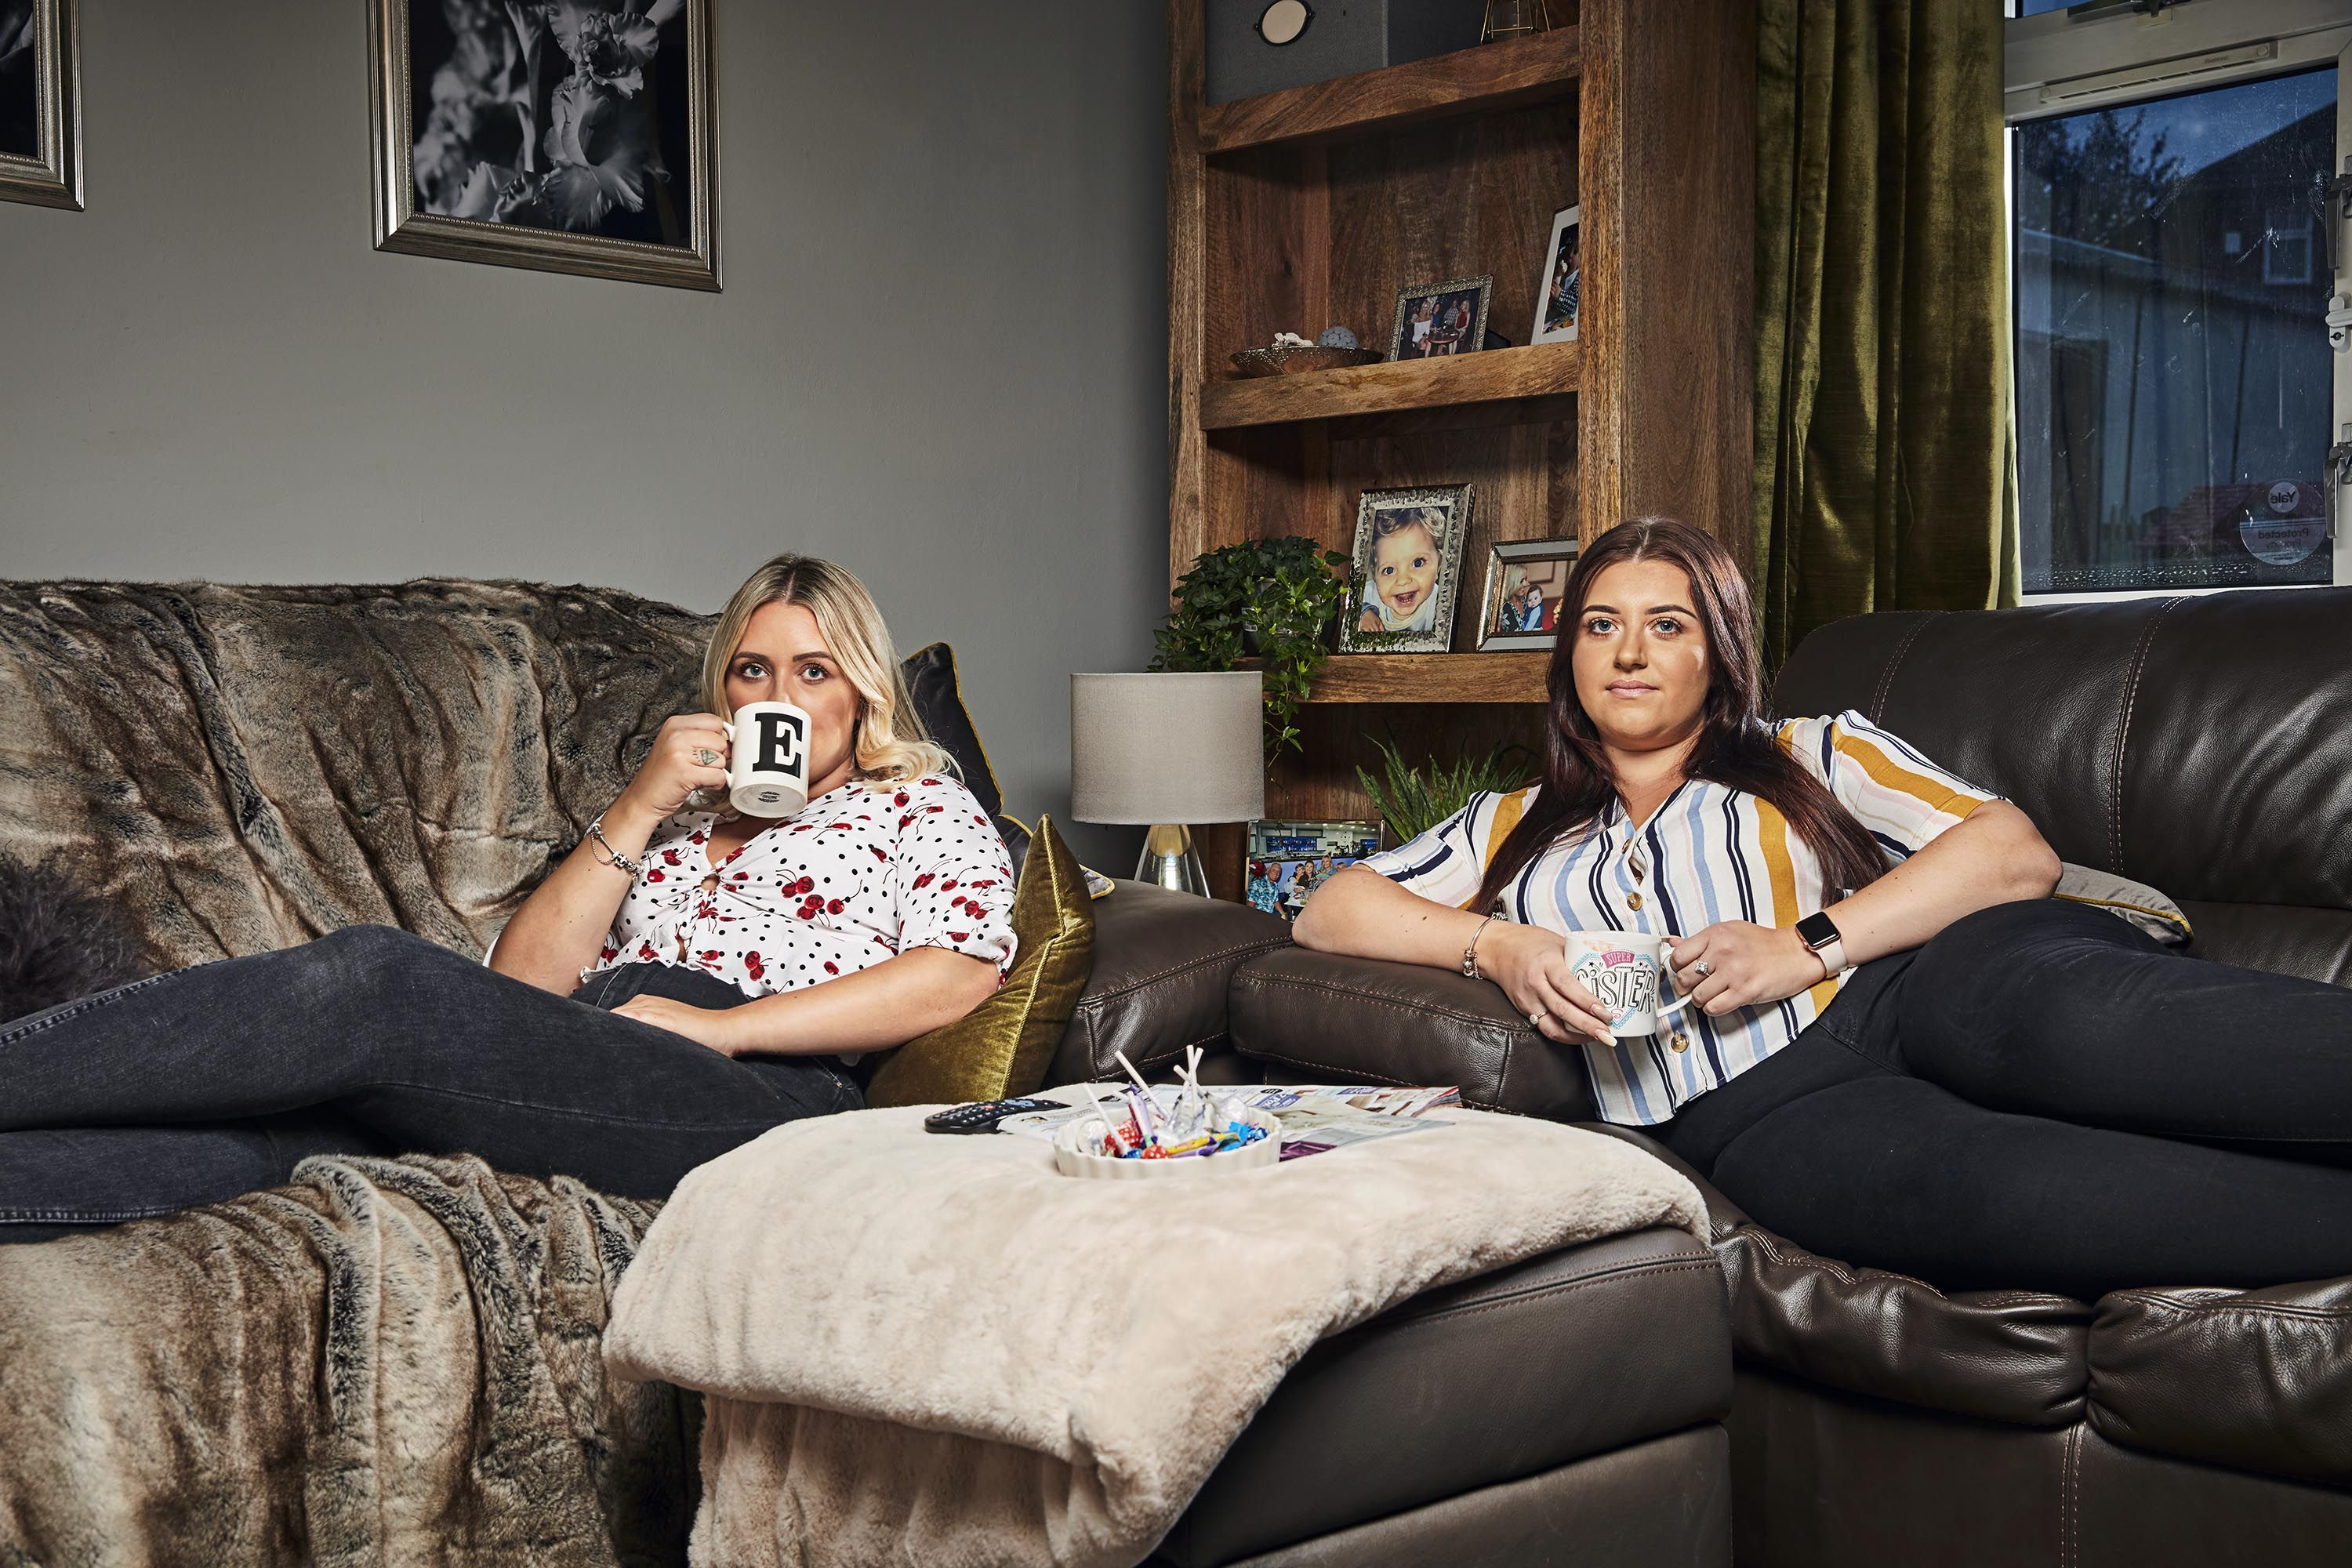 Gogglebox stars criticised by viewers for making MeToo joke